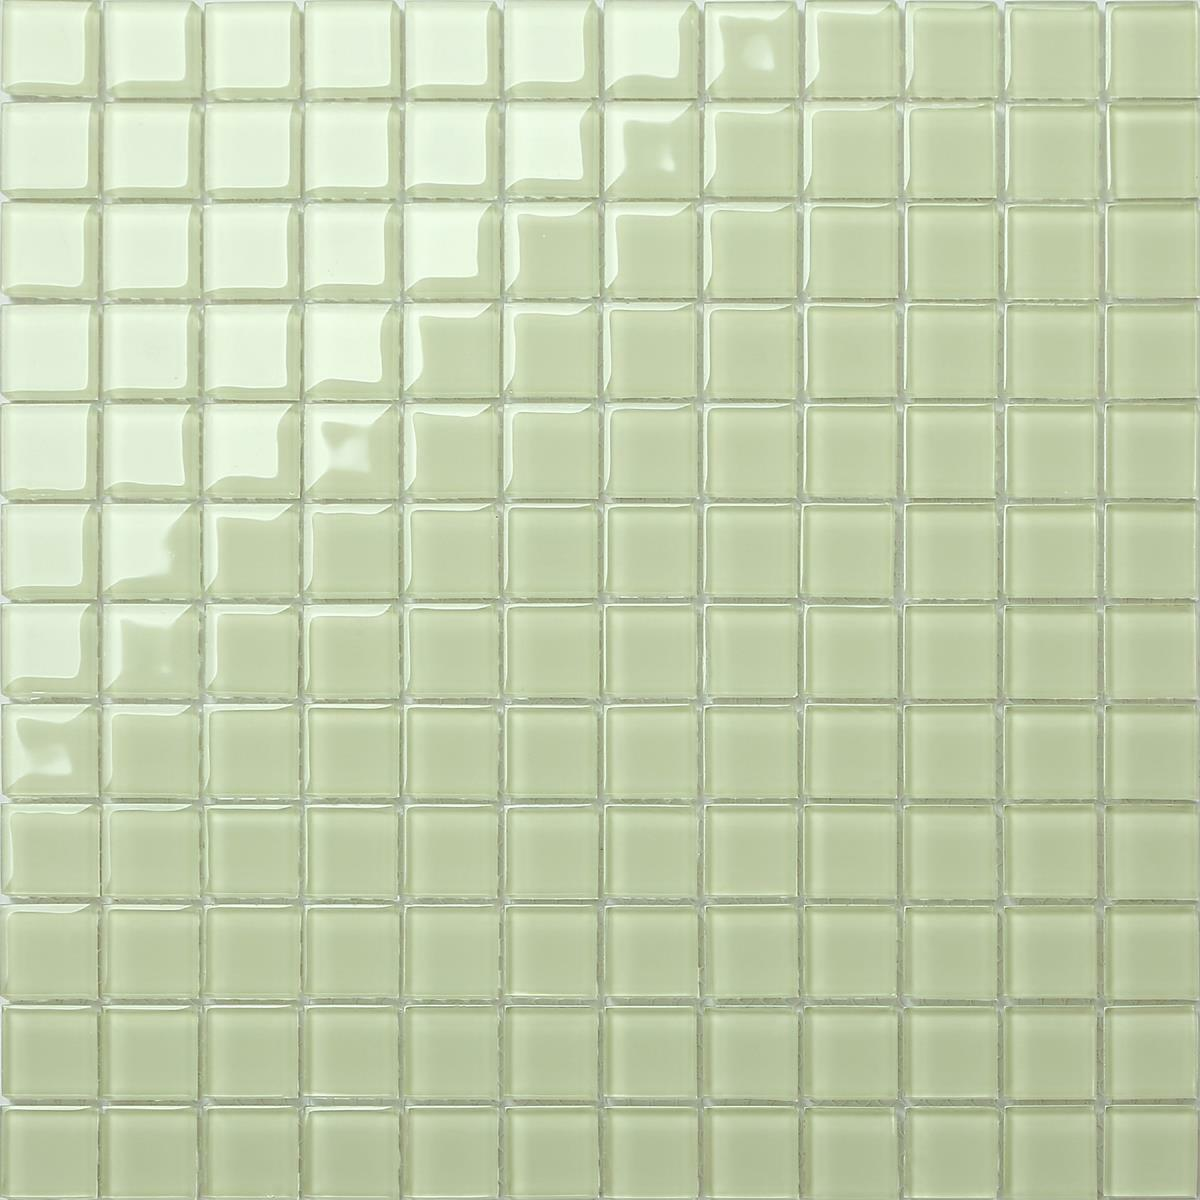 1 SQM Glass Mosaic Wall Tiles Light Grün (300x300x4mm) GTR10021 m2